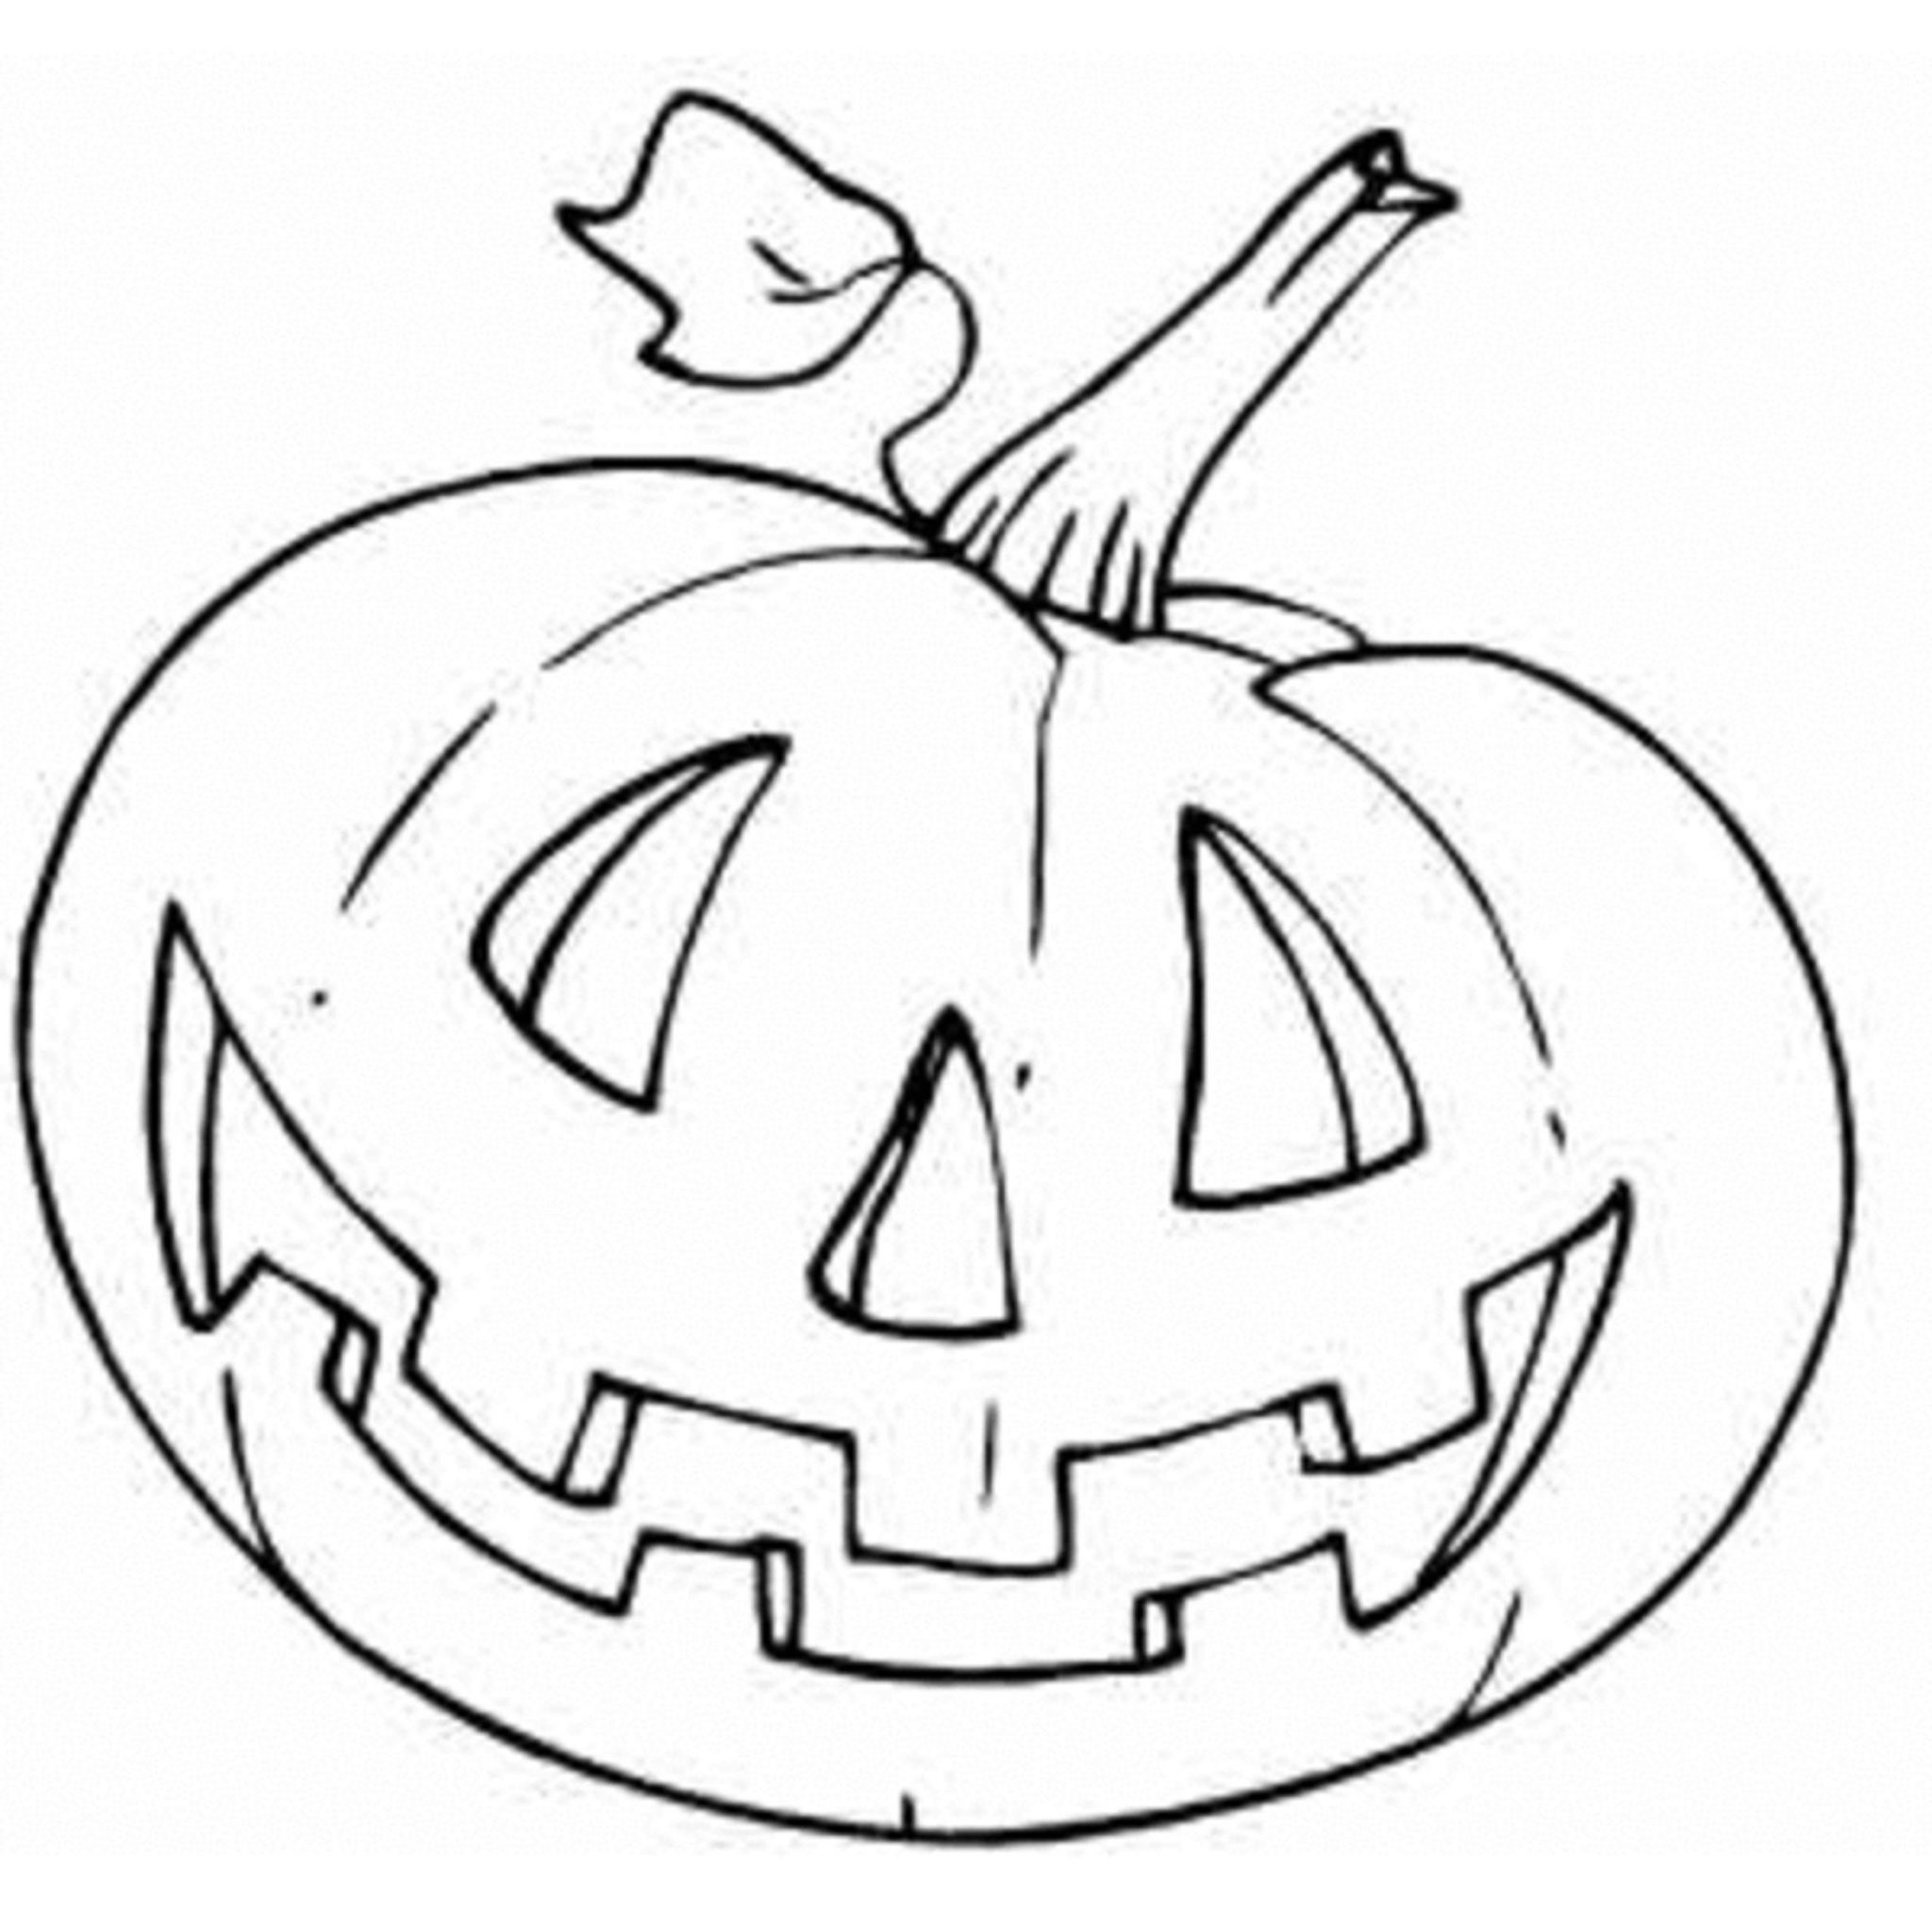 gallery of pumpkin coloring pages and benefits of drawing for kids - Pumpkin Coloring Template